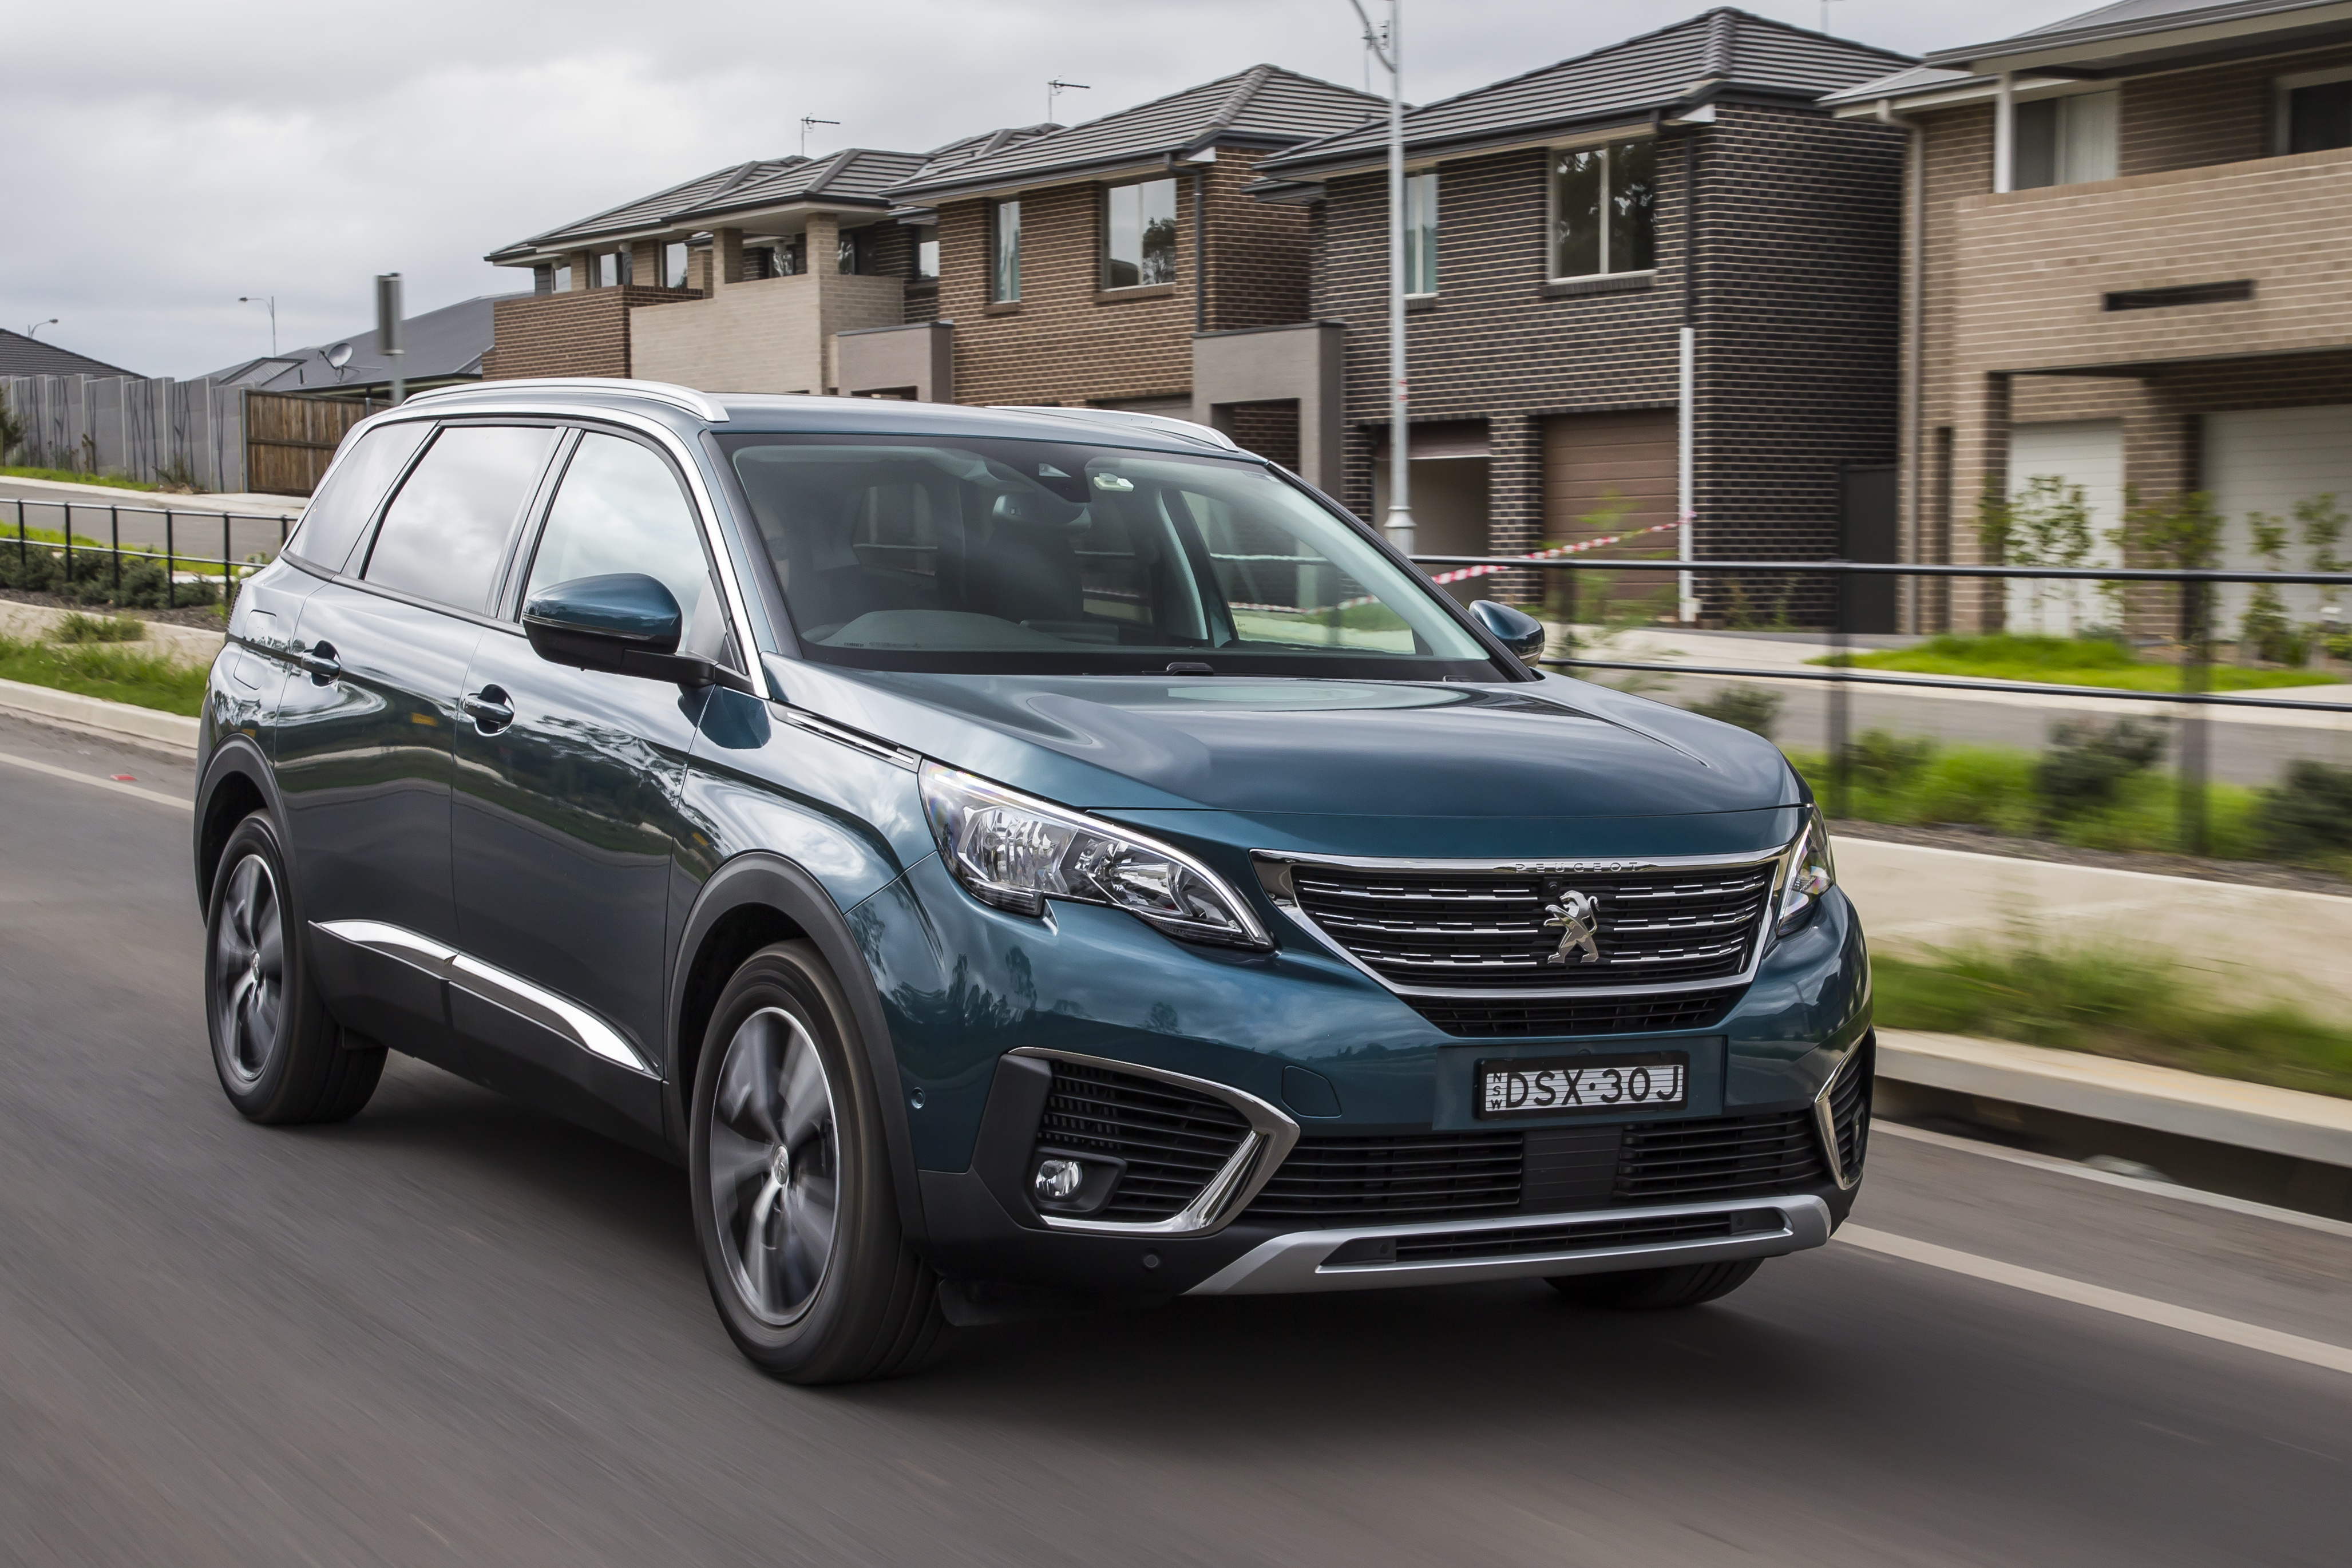 What 5+2 seat SUV should I buy?